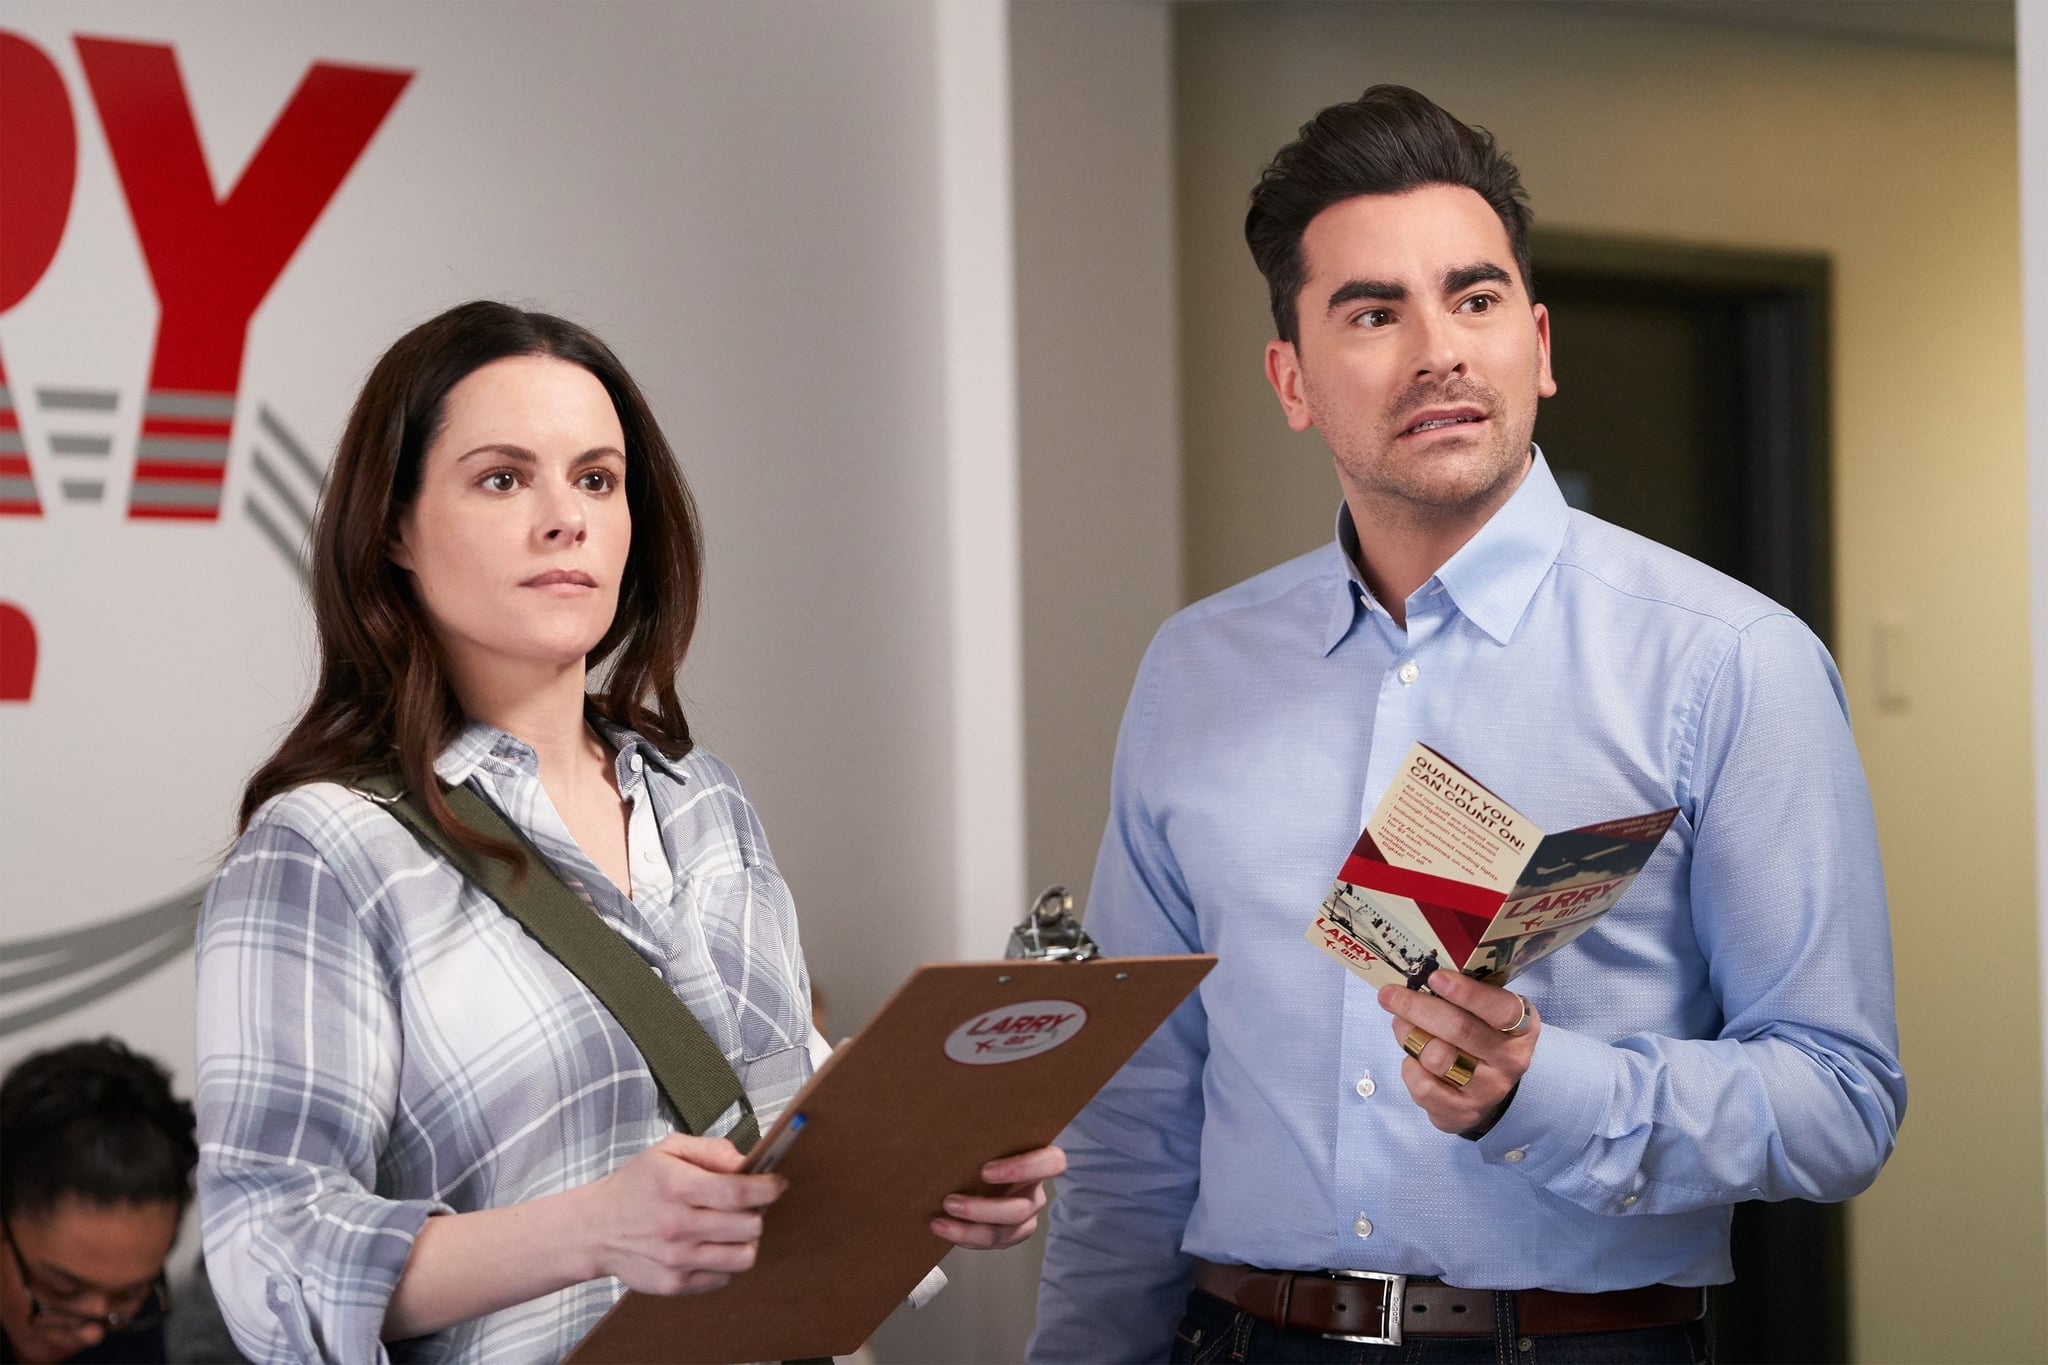 SCHITT'S CREEK, from left: Emily Hampshire, Daniel Levy, 'The Job Interview', (Season 6, ep. 603, originally aired in the US on Jan. 21, 2020). photo: CBC/Comedy Central / courtesy Everett Collection